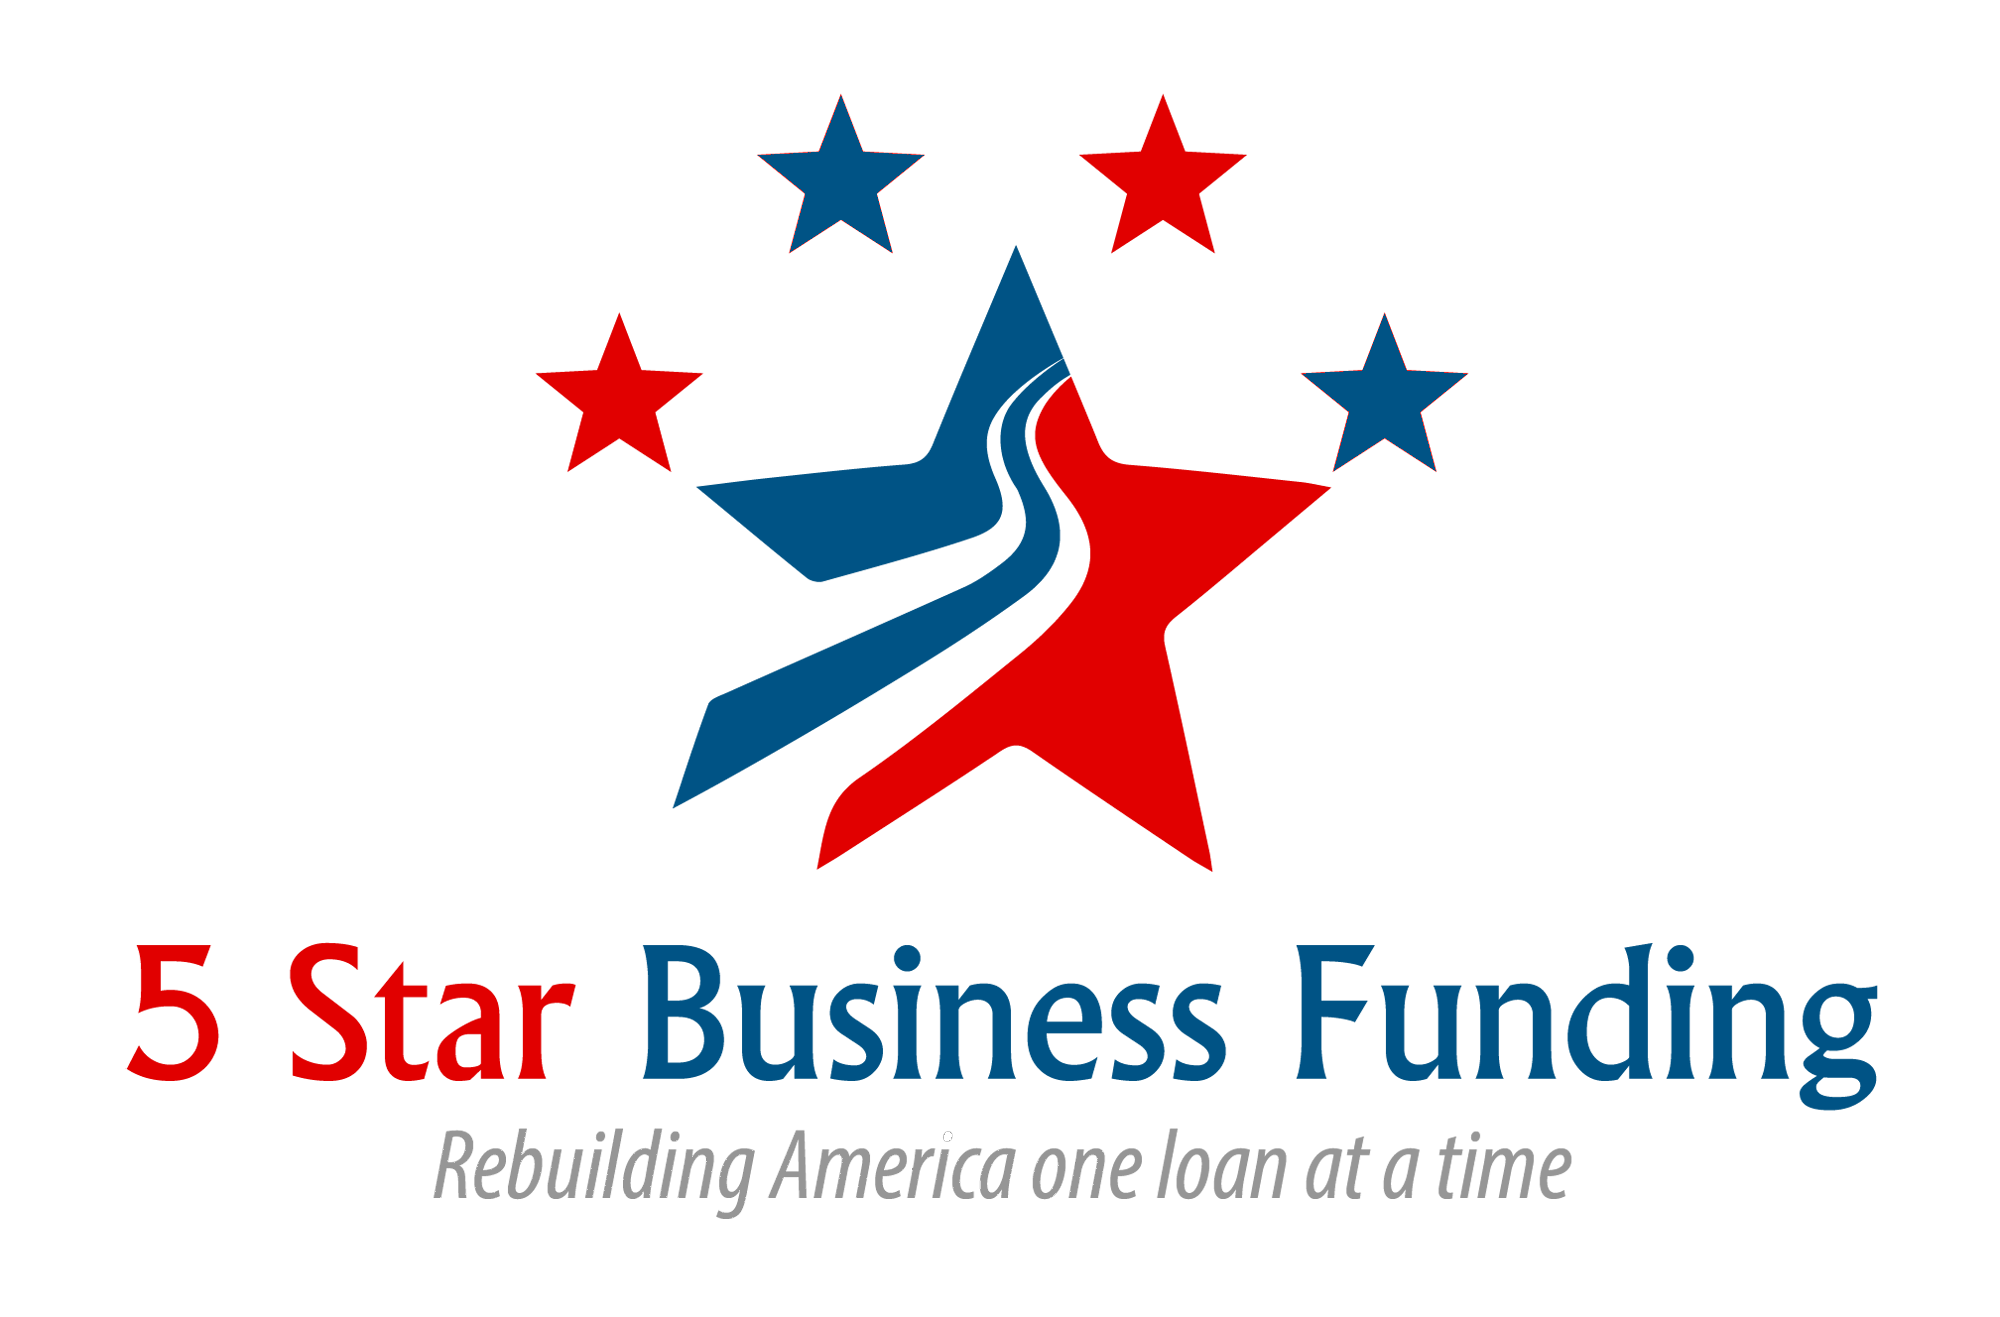 5 Star Business Funding